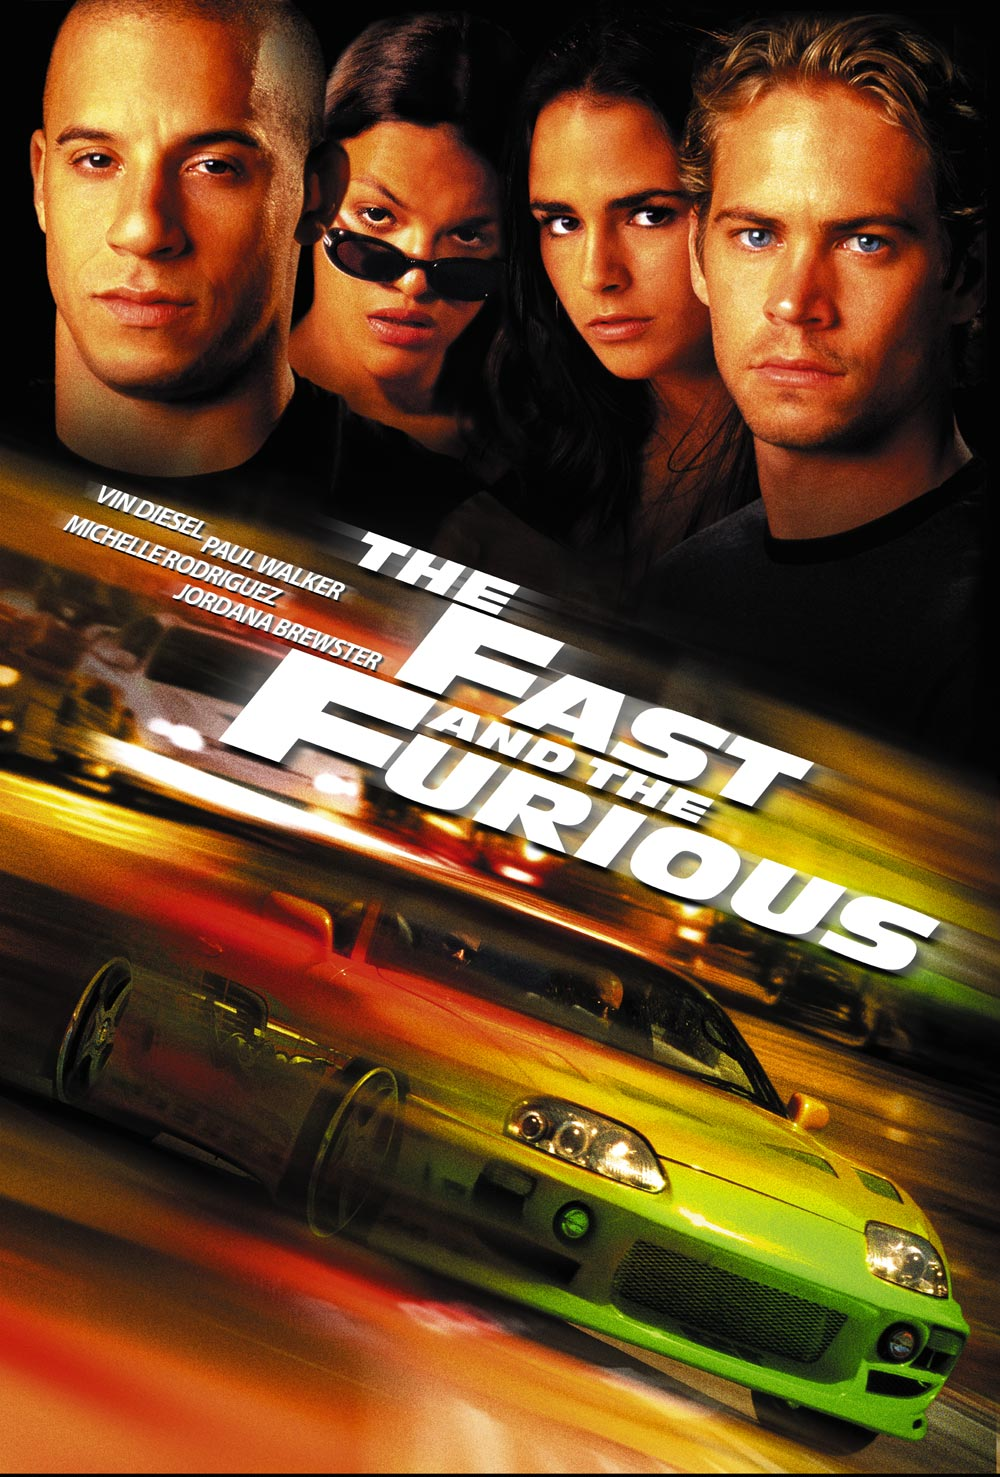 The Fast and Furious franchise begins here!